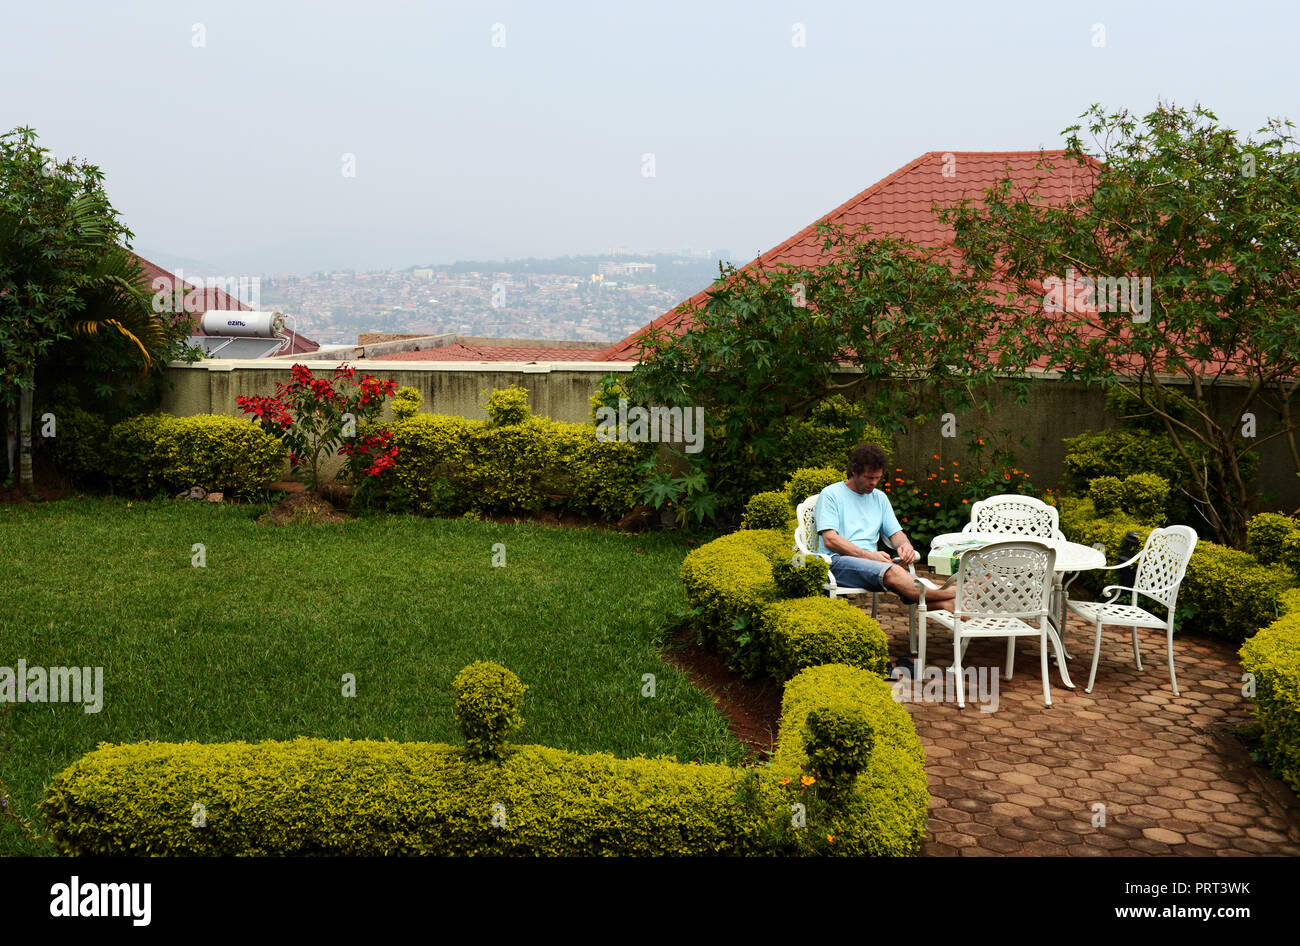 A tourist resting in the beautiful garden of the Yambi hotel in Kigali. - Stock Image